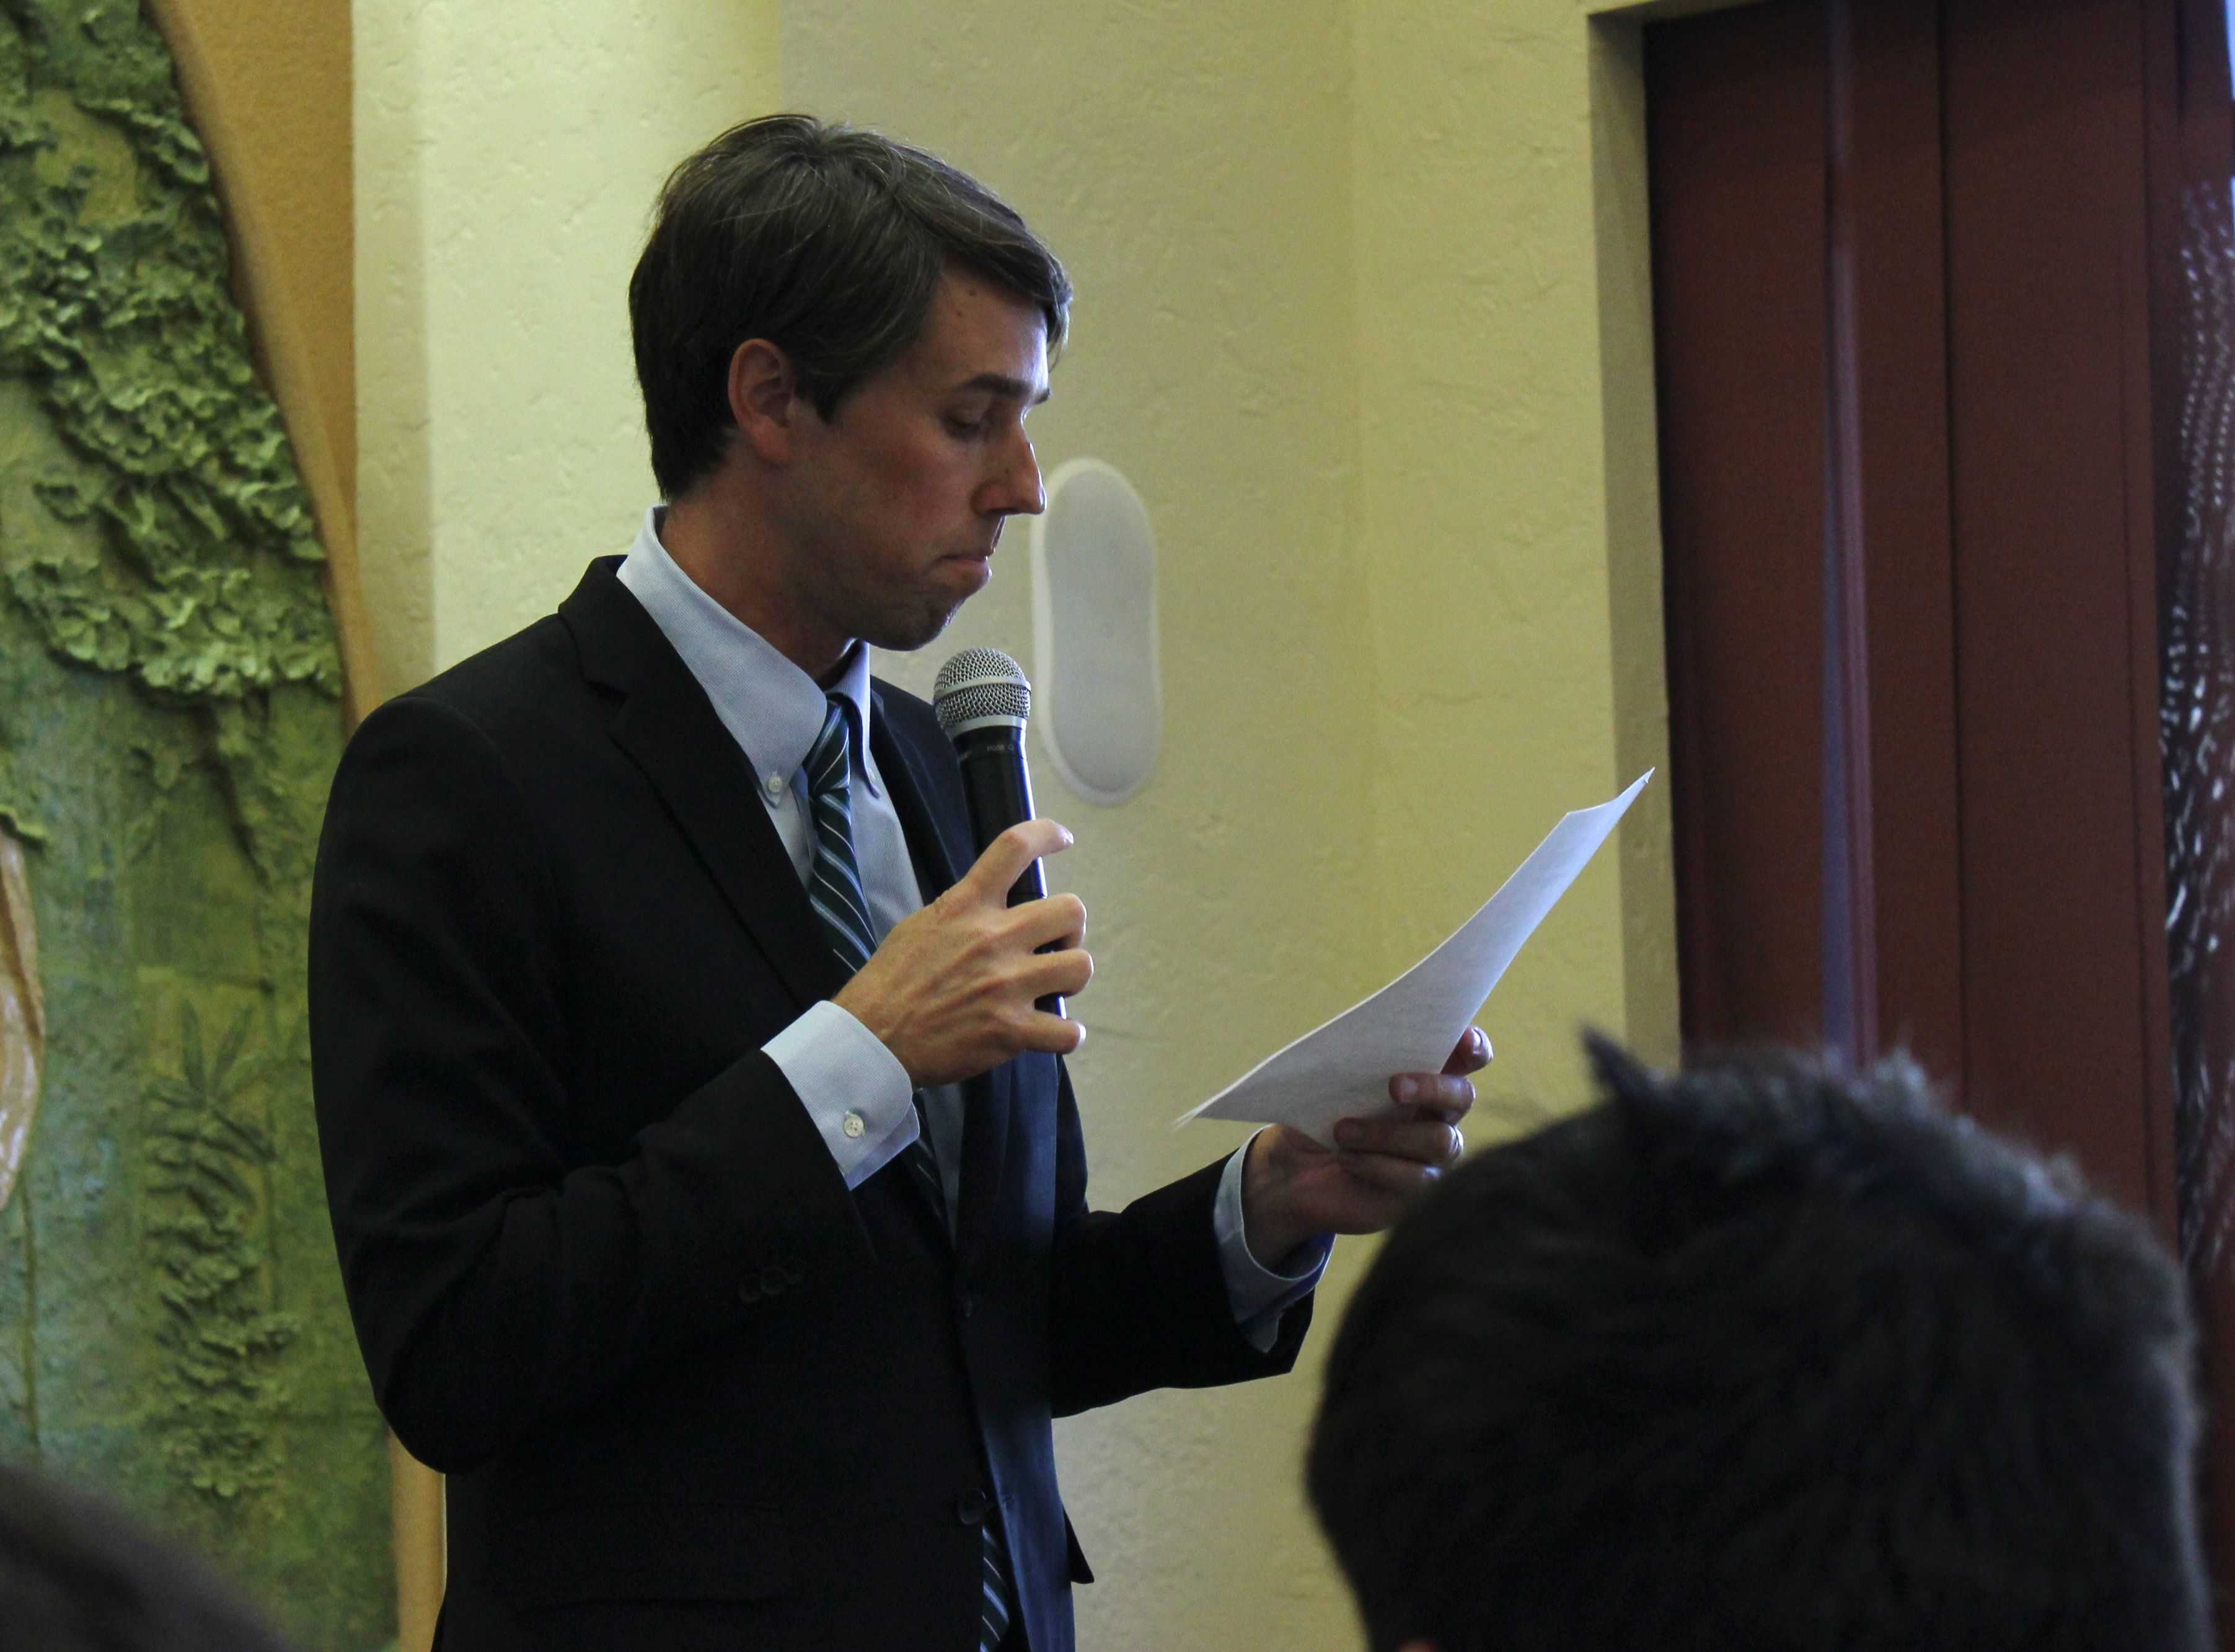 Rep. Beto O'Rourke (D-Texas) reads a resolution offered by the Obama Administration about scenarios of U.S. action in Syria.